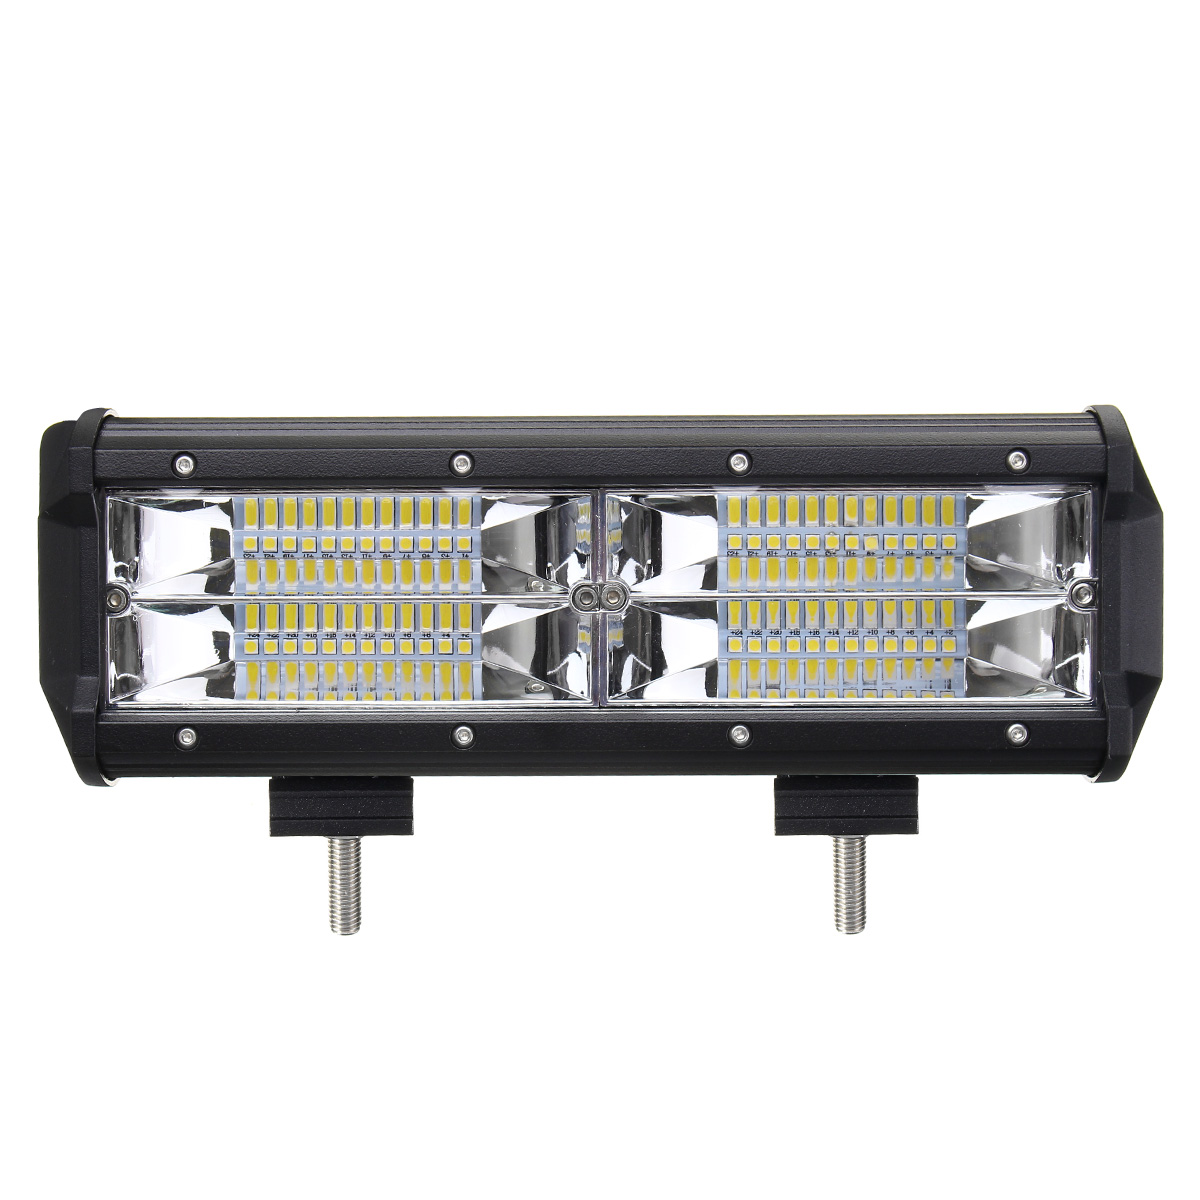 8D 7 Inch 216W LED Light Bar Flood Spot Combo Off Road Car